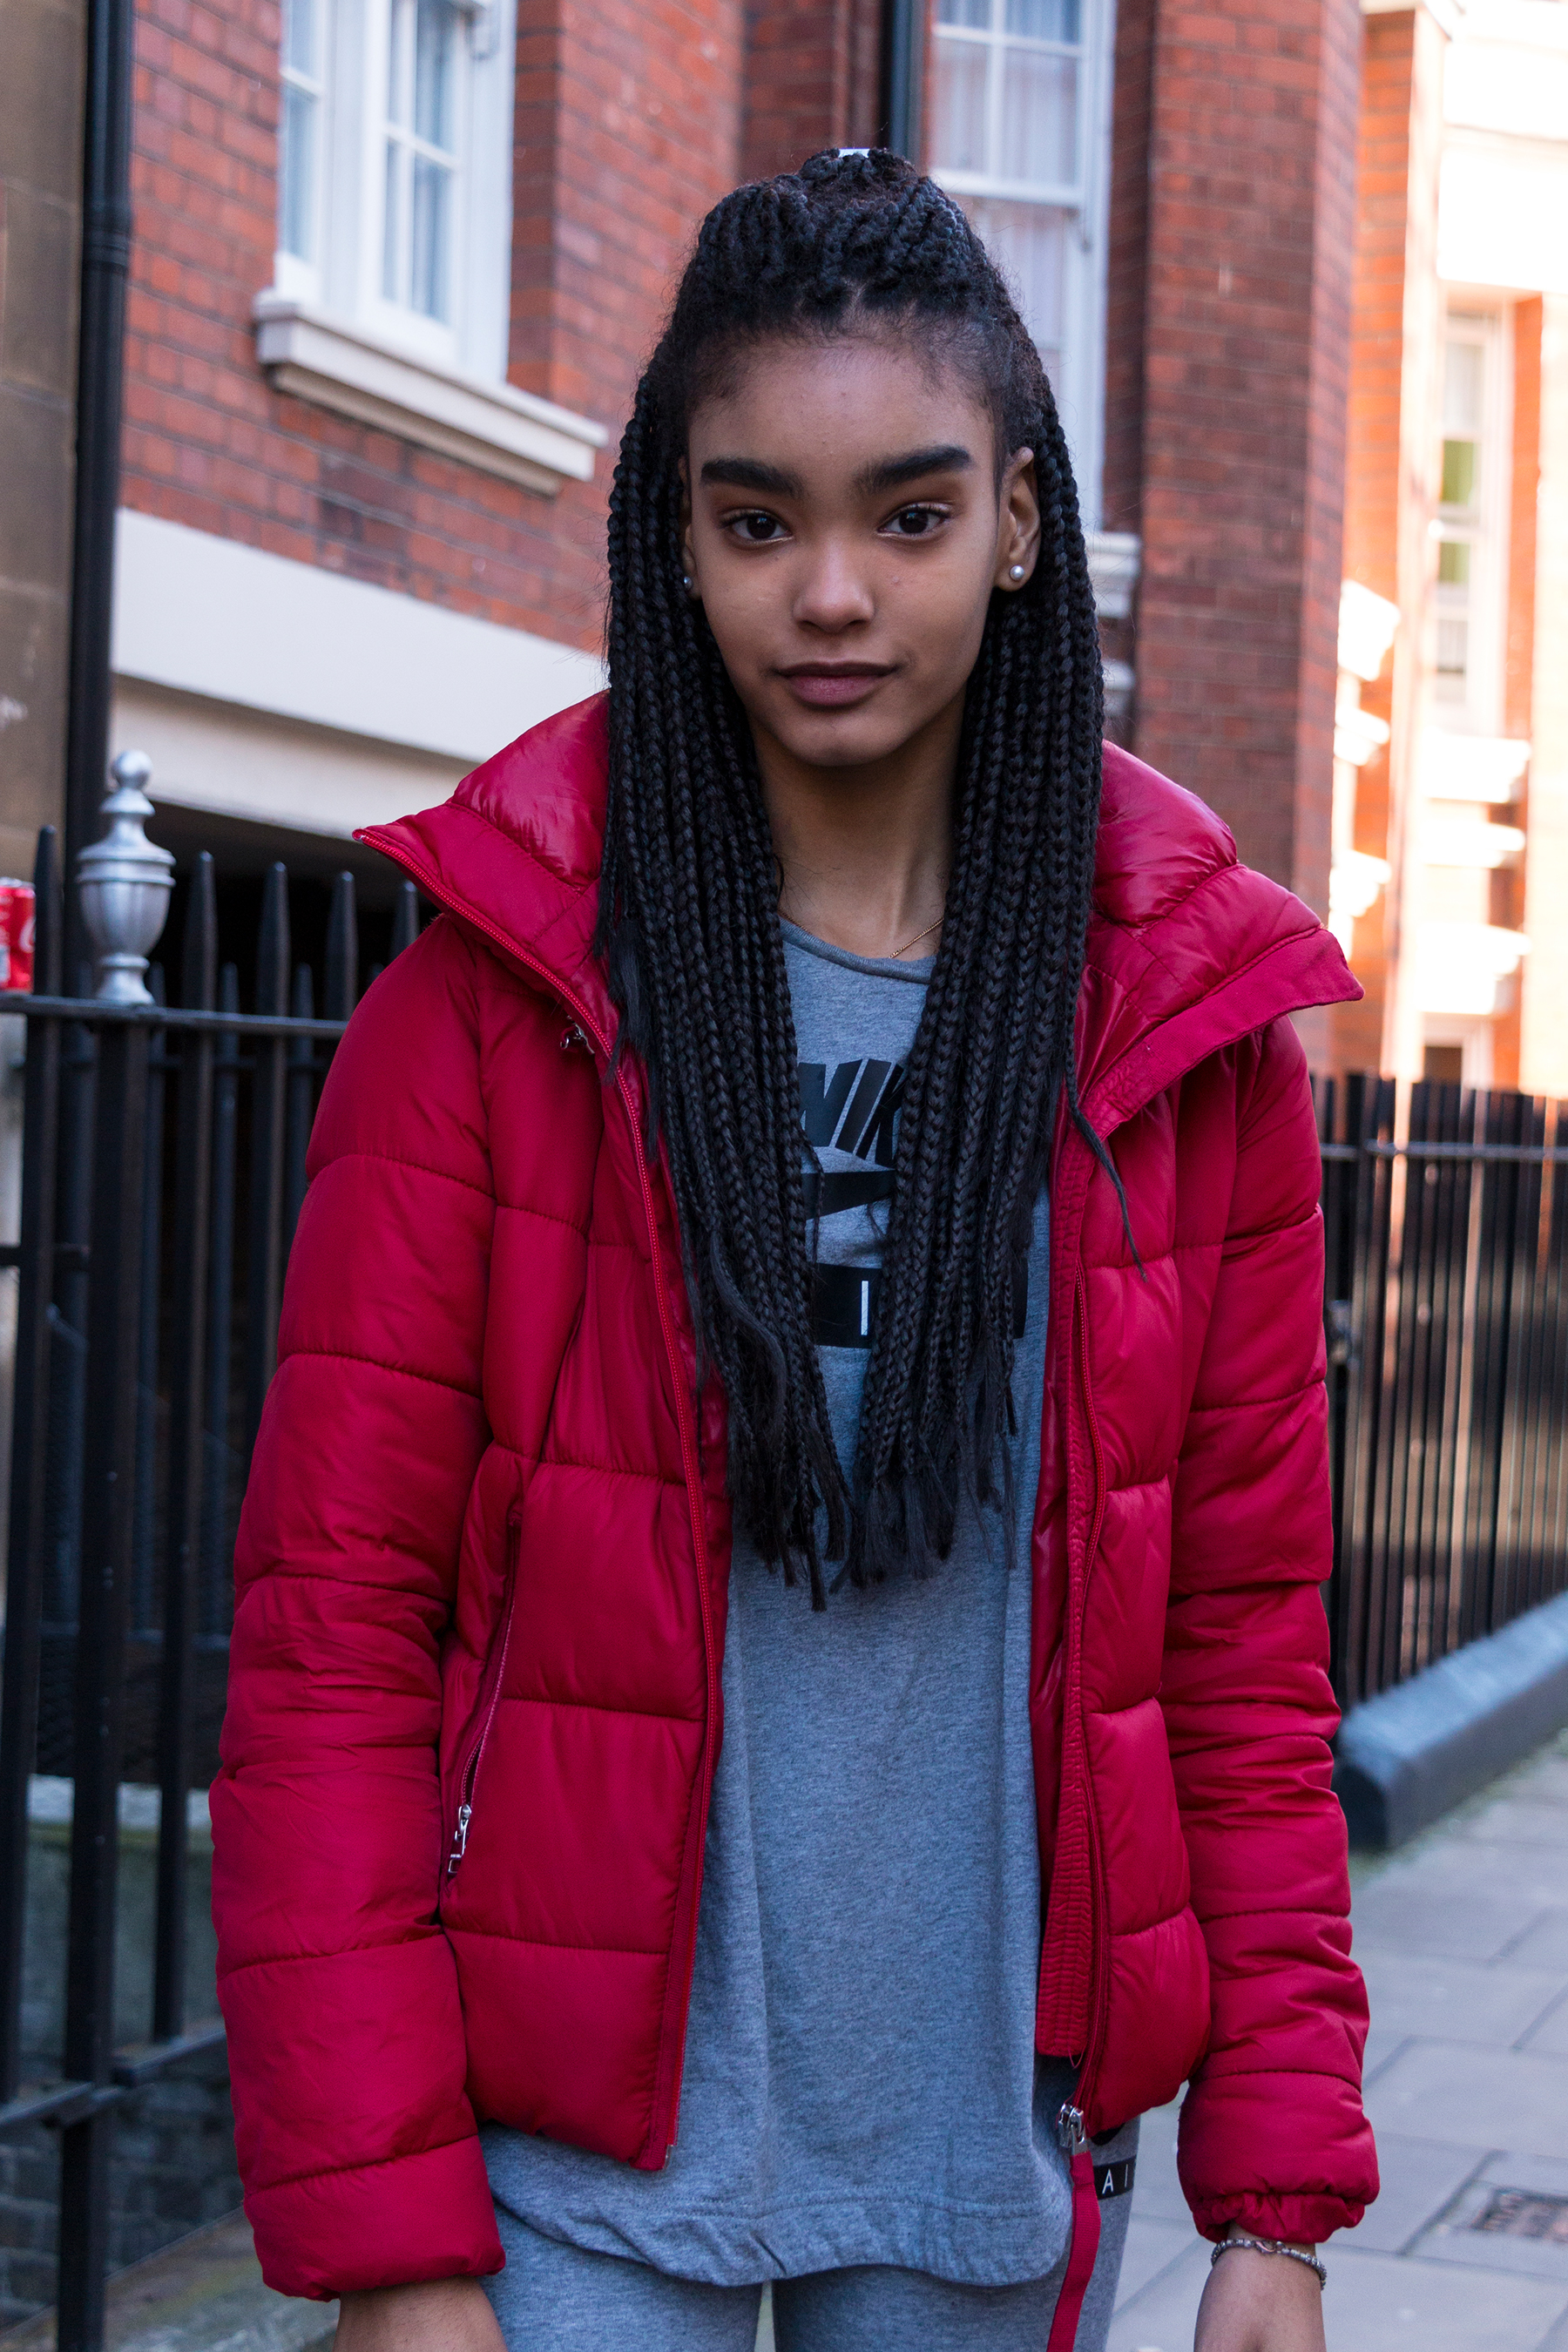 An with interview plum sykes, Outfit hat Bucket tumblr